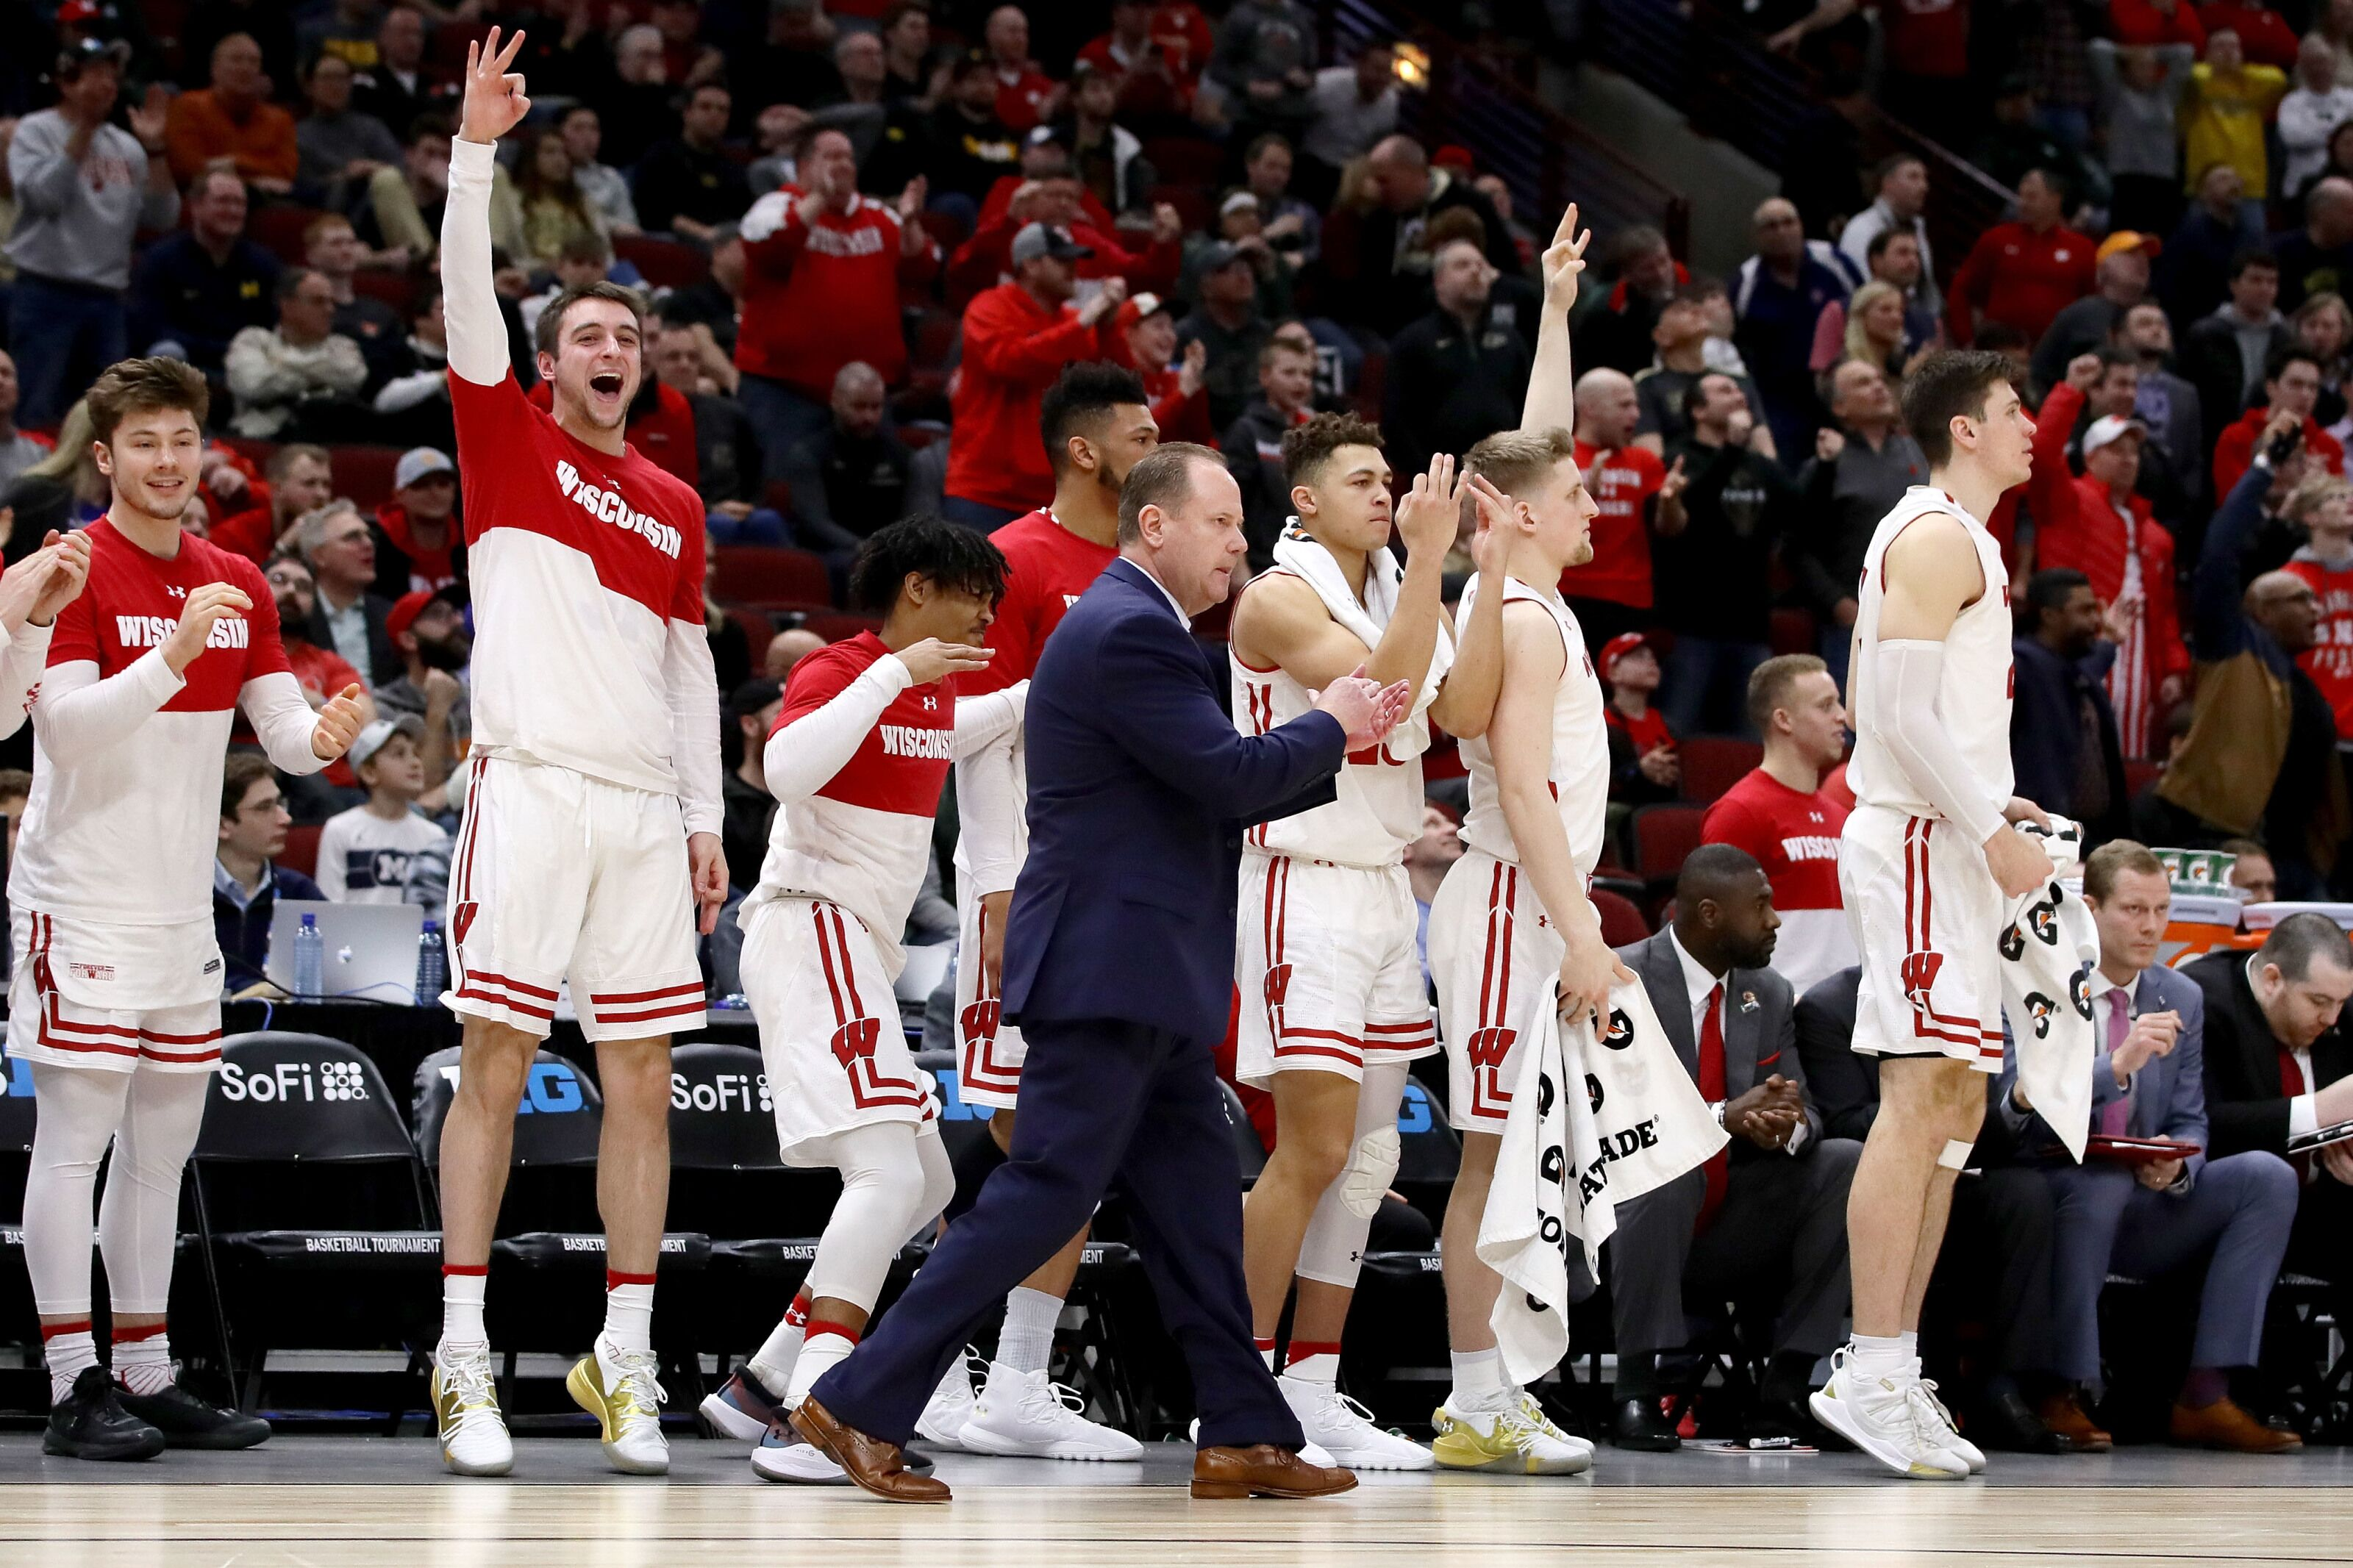 Wisconsin Basketball: Badgers land top targets Carlson and Crowl in 2020